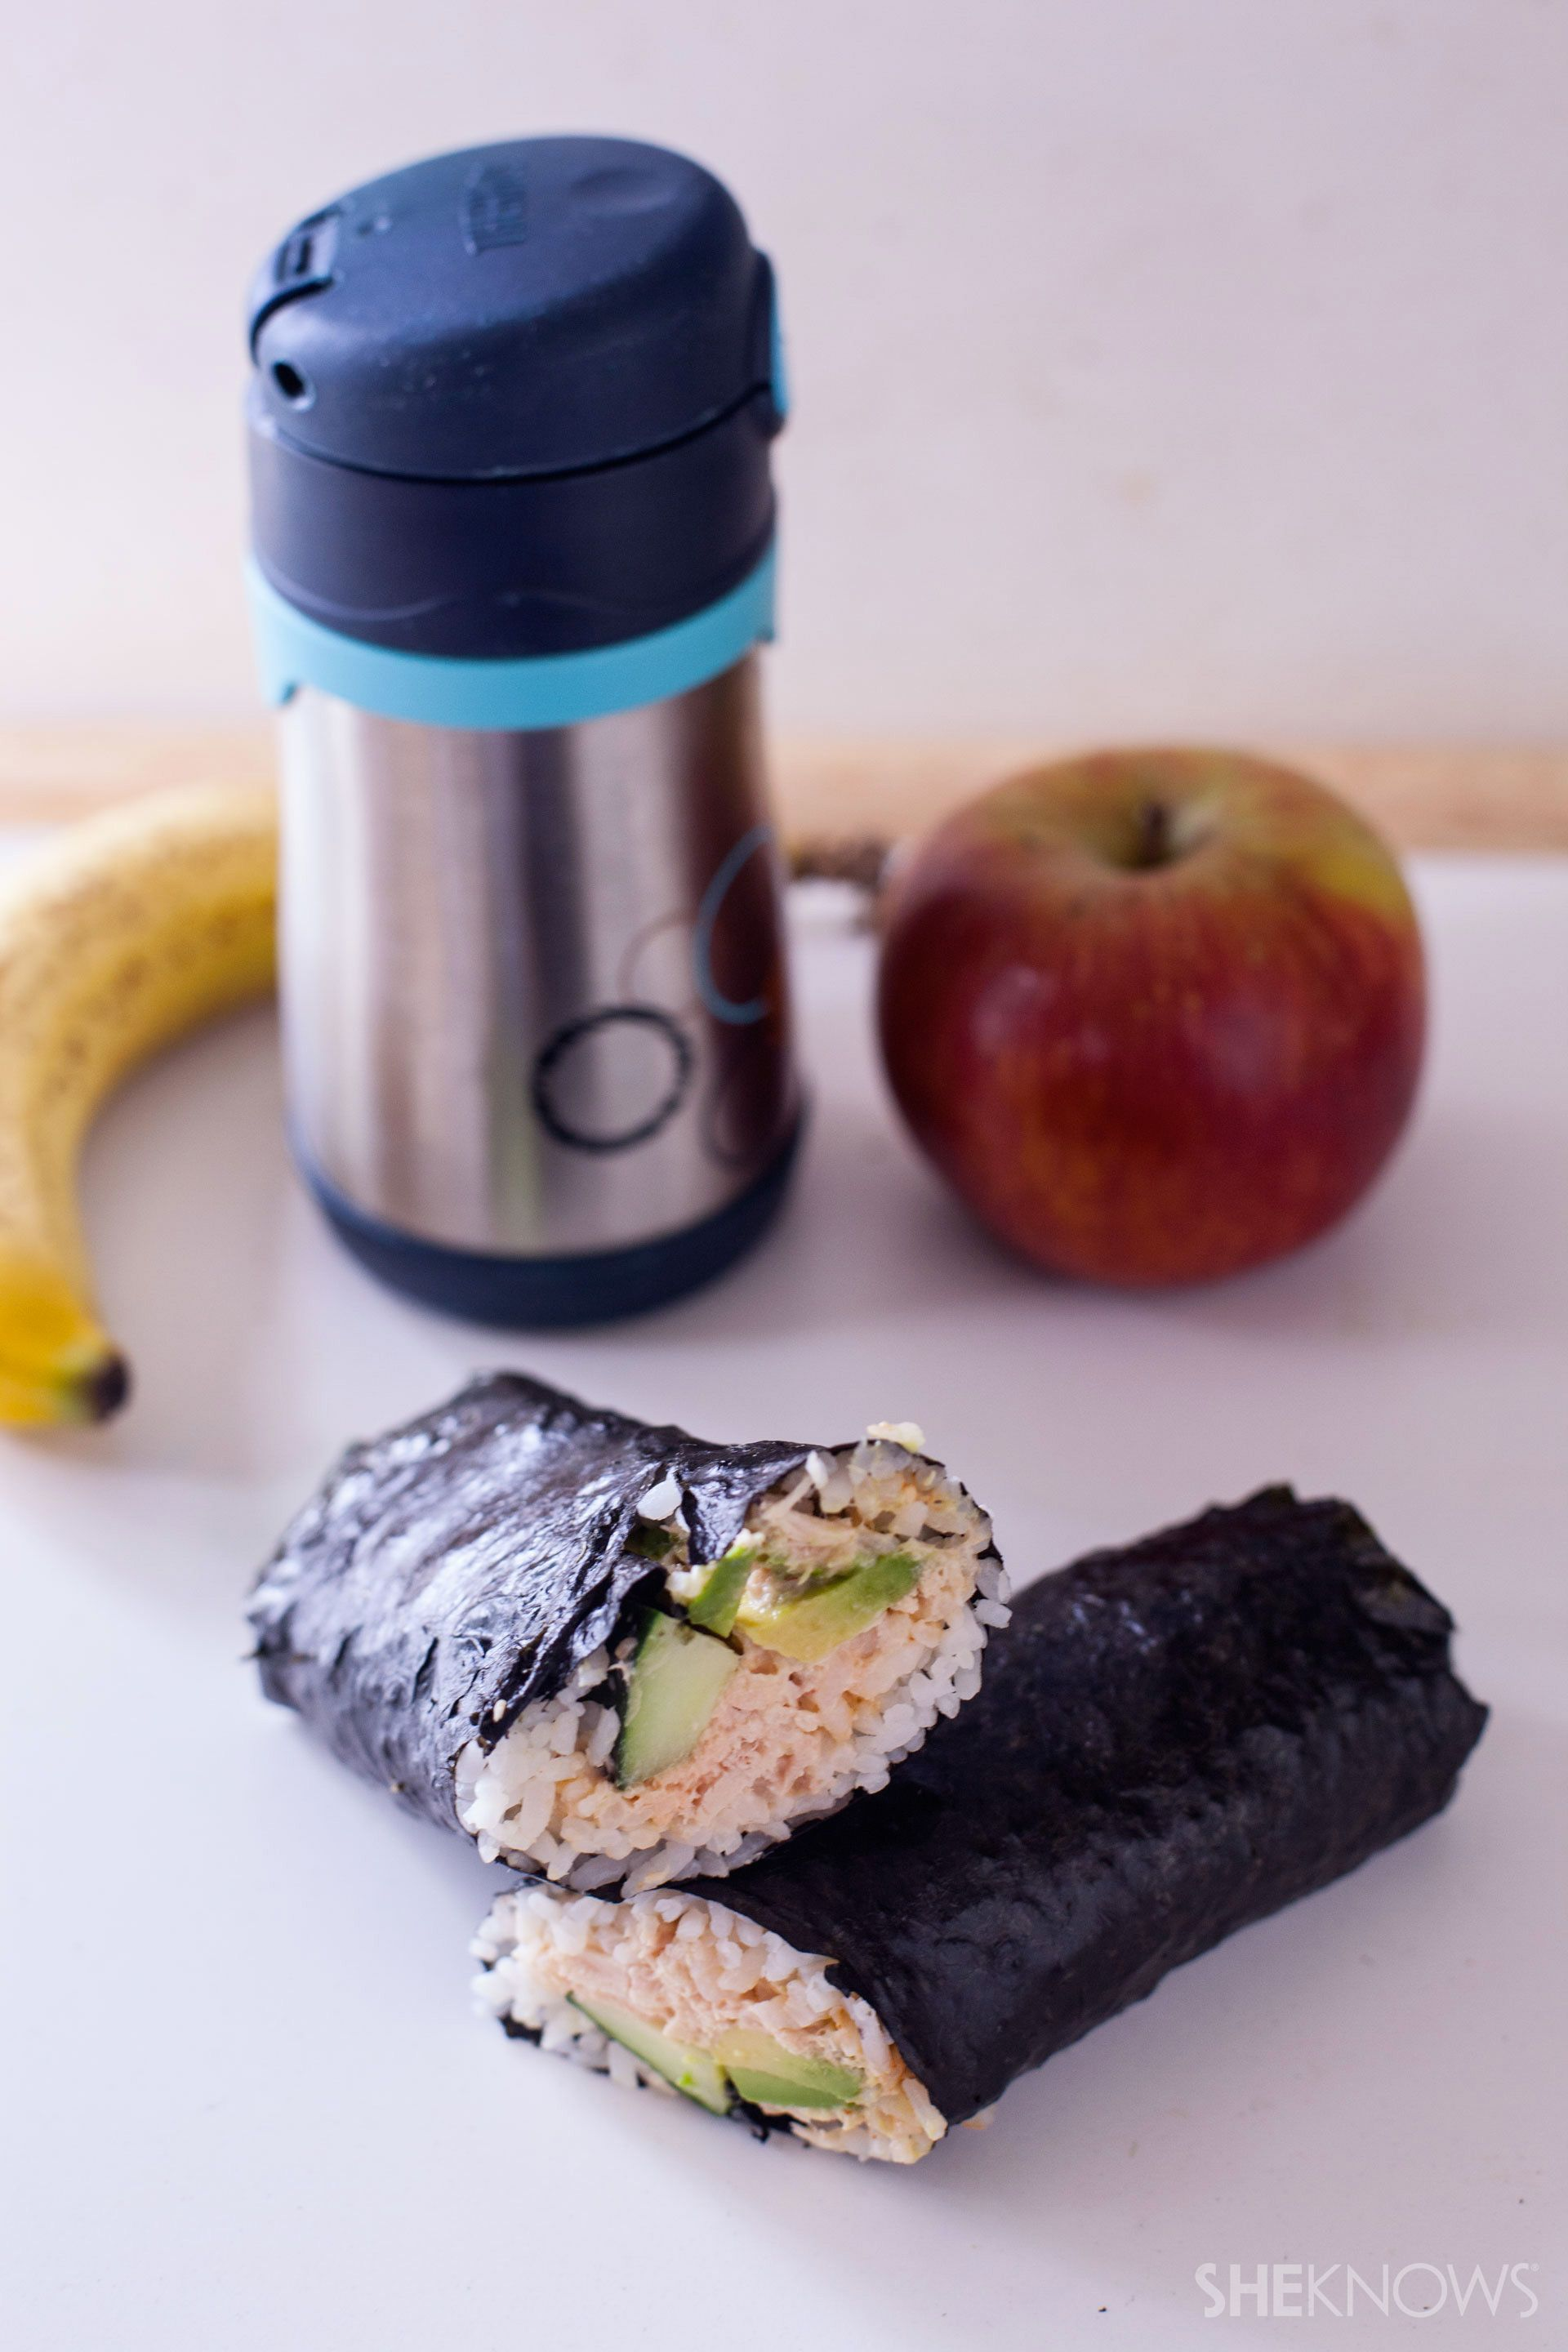 Your kids will love this DIY tuna and avocado sushi hand roll for an easy school lunch